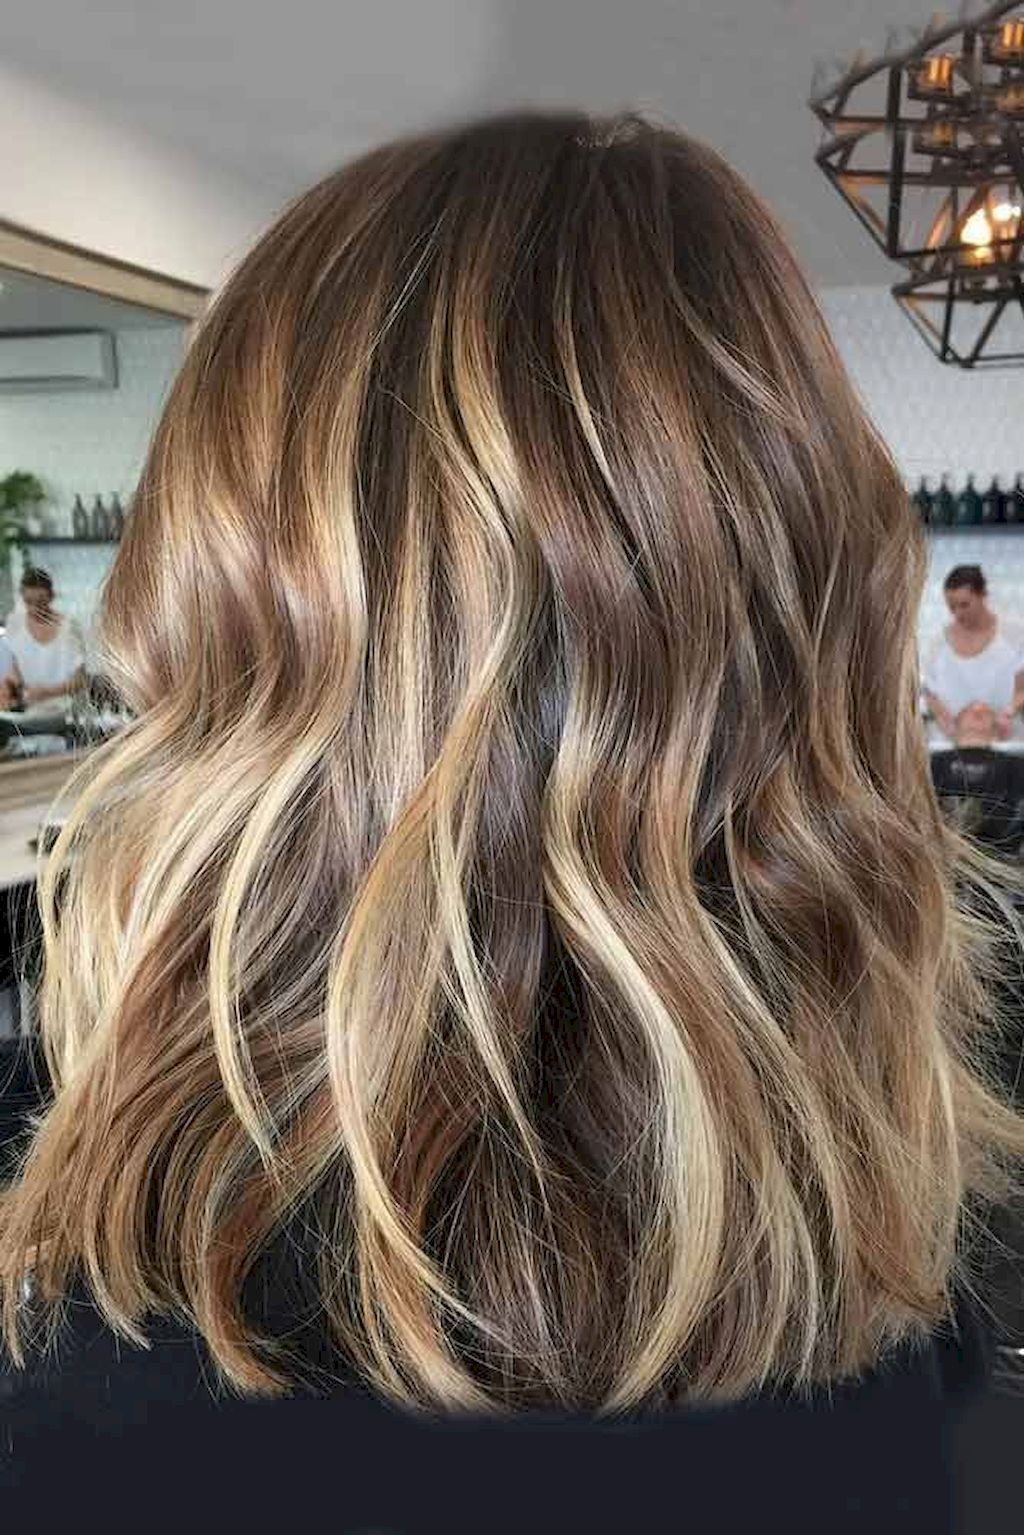 01 Beautiful Light Brown Hair Color Ideas Pinterest Light Brown